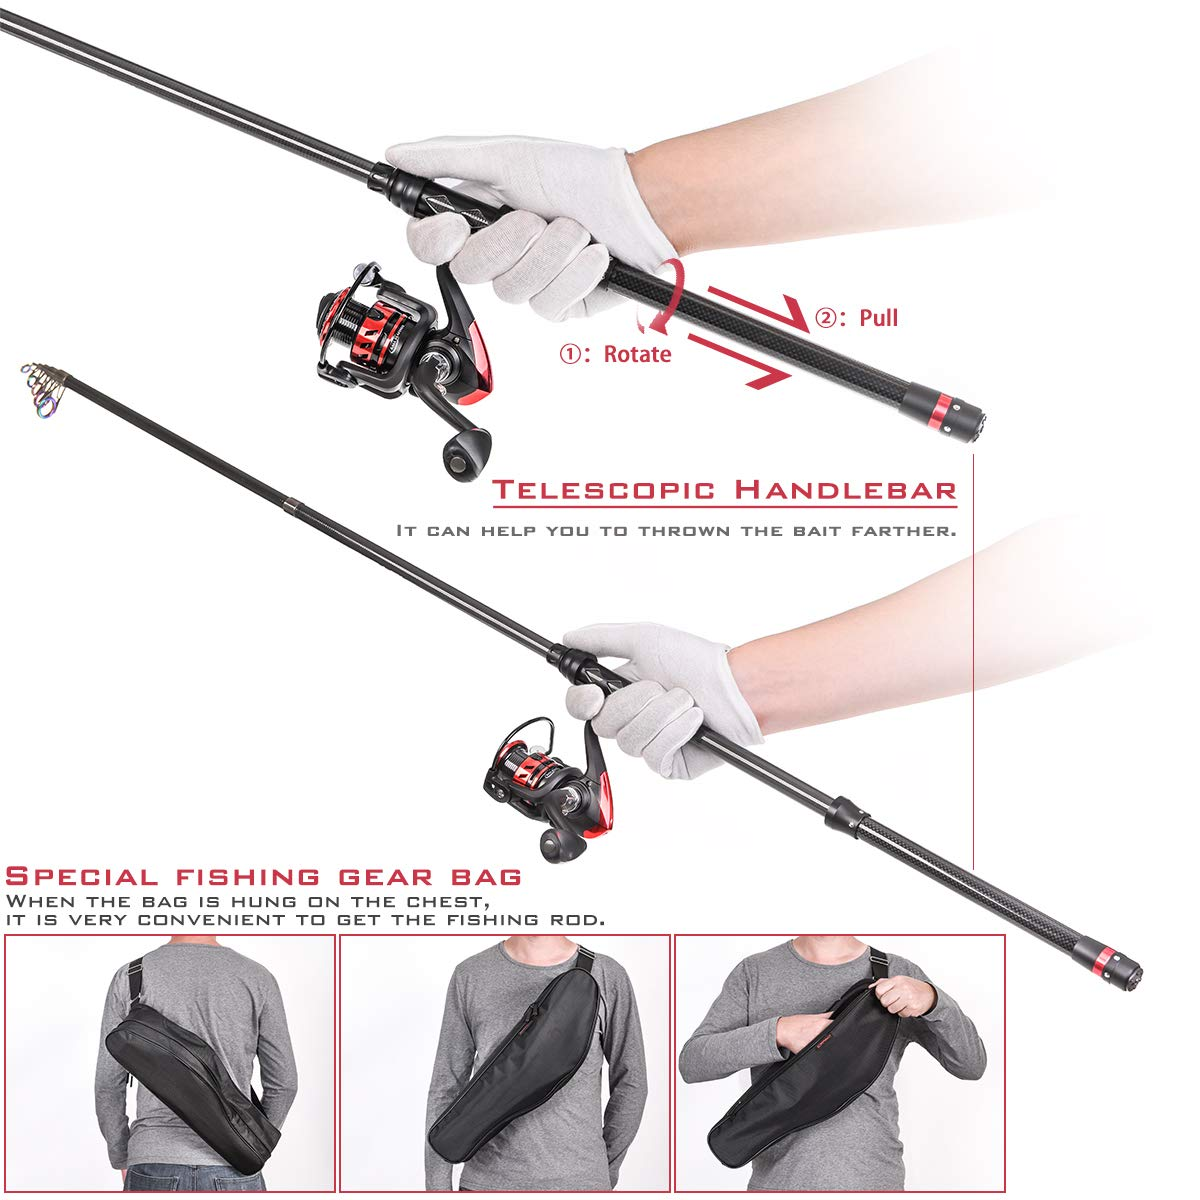 CAPACI Fishing Rod Reel Combos Carbon Fiber Protable Telescopic Fishing Pole with Spinning Reel Full Kits Updated Fishing Carrier Bag for Travel Saltwater Freshwater Fishing